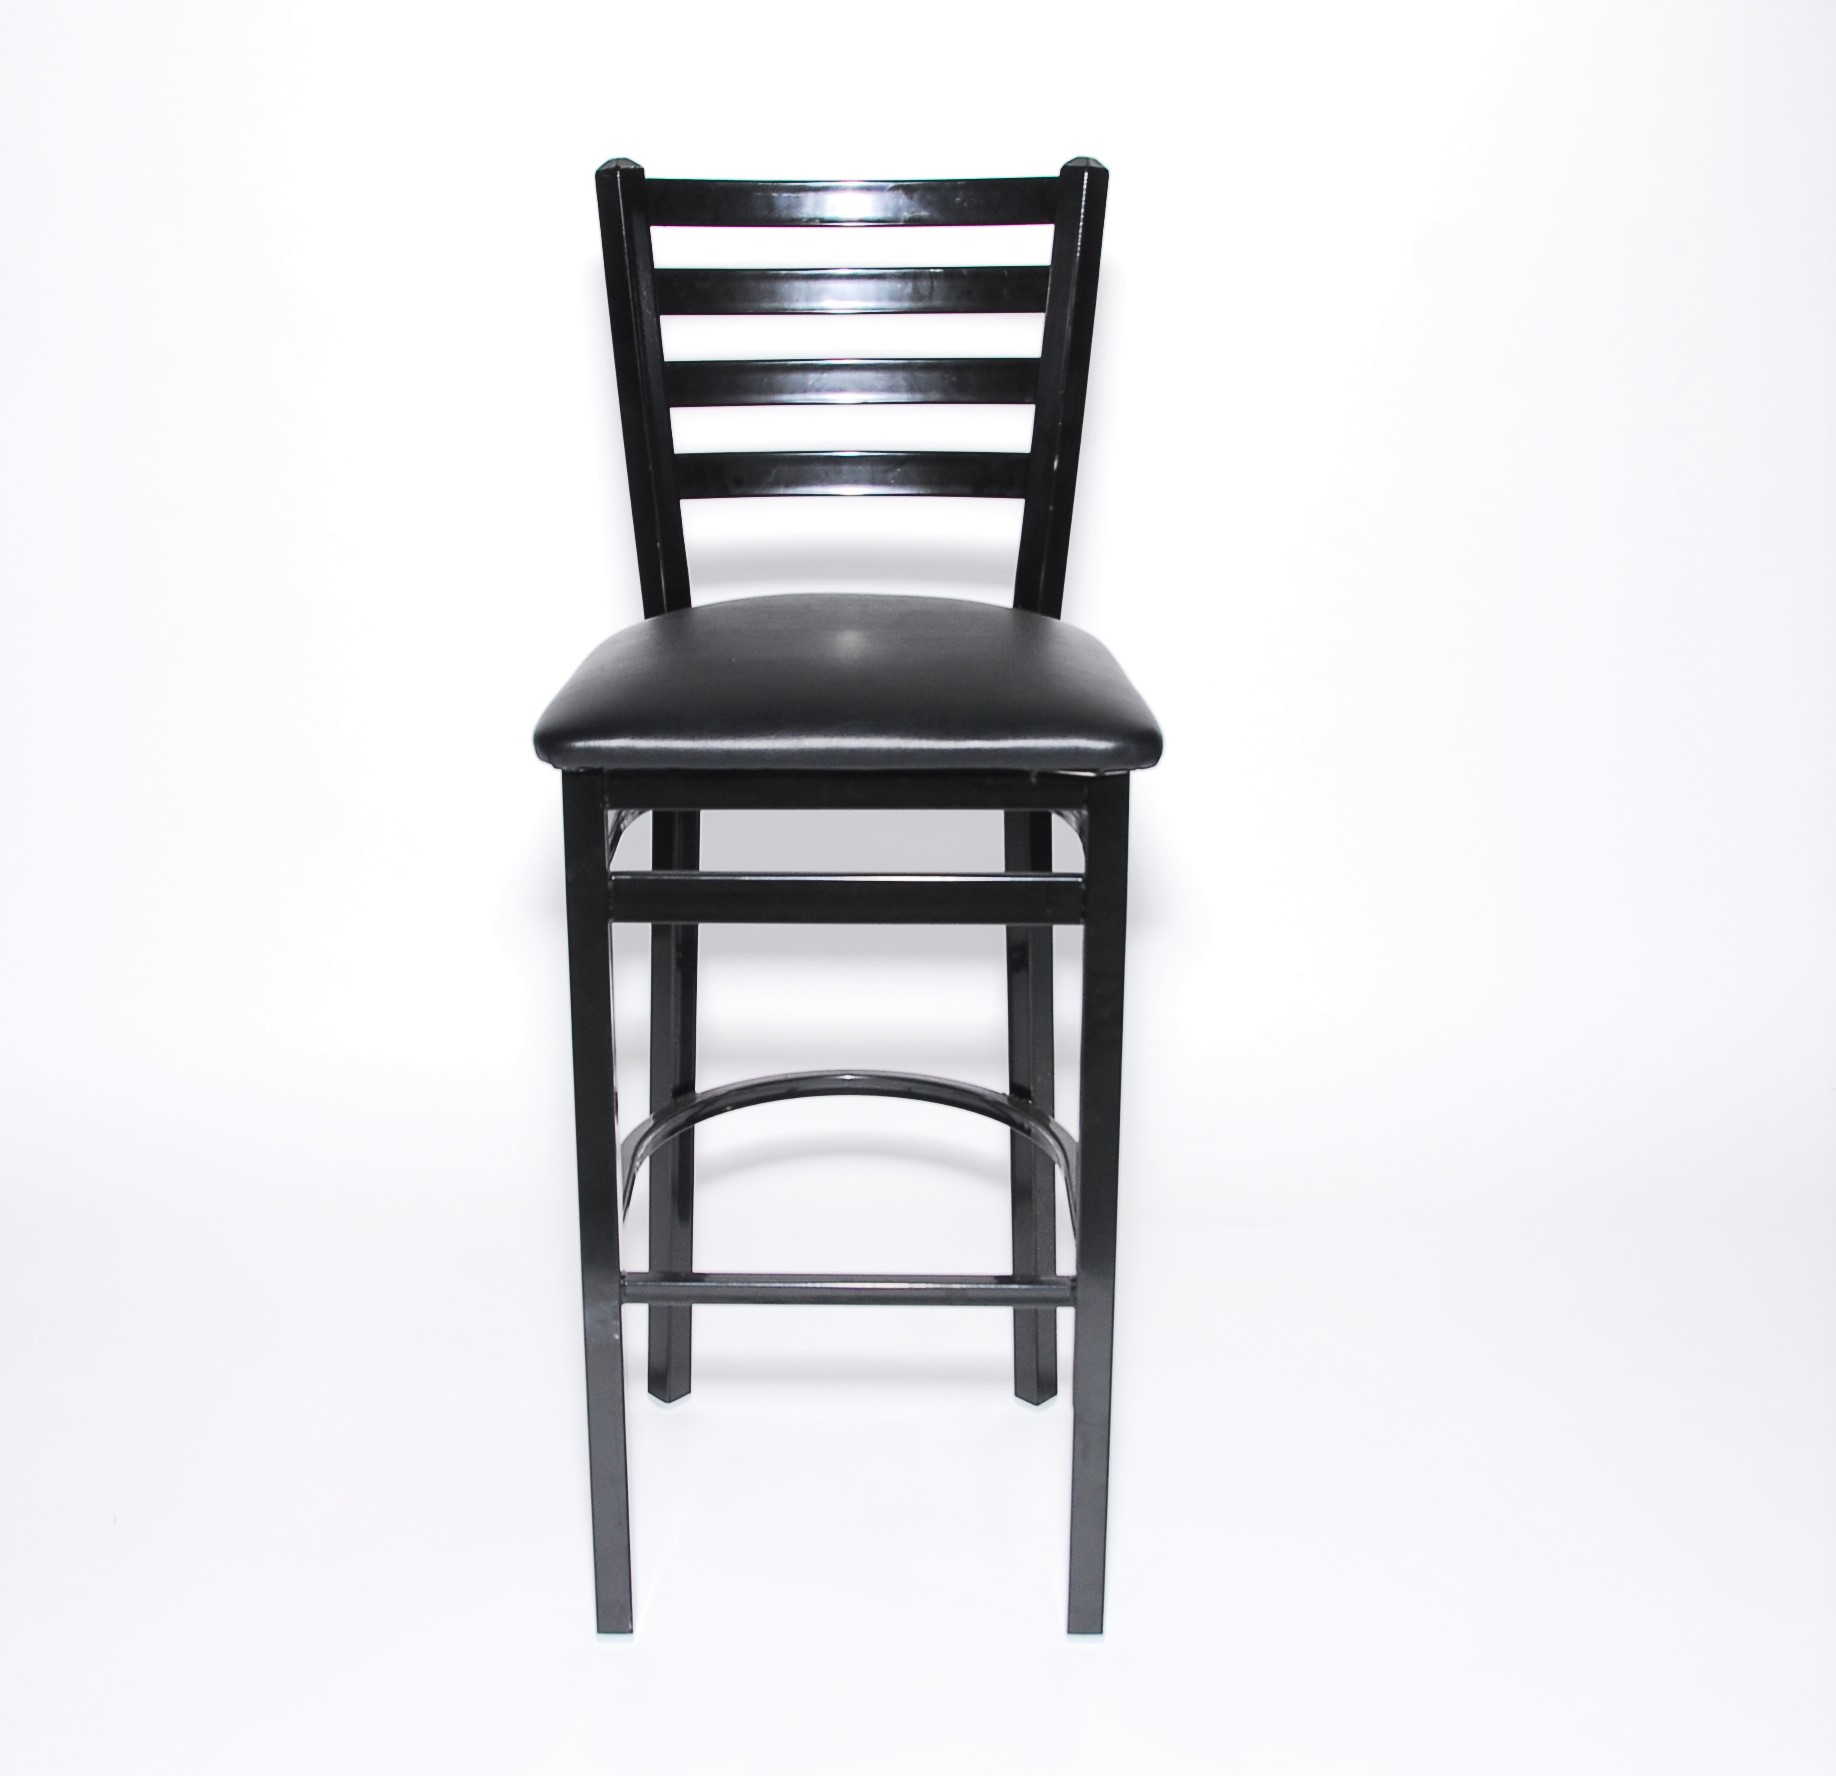 Iron Guard-2301 Bar Stool Black, LadderBack Frame - Black Vinyl Seat, Matte Finish| Public Kitchen Supply